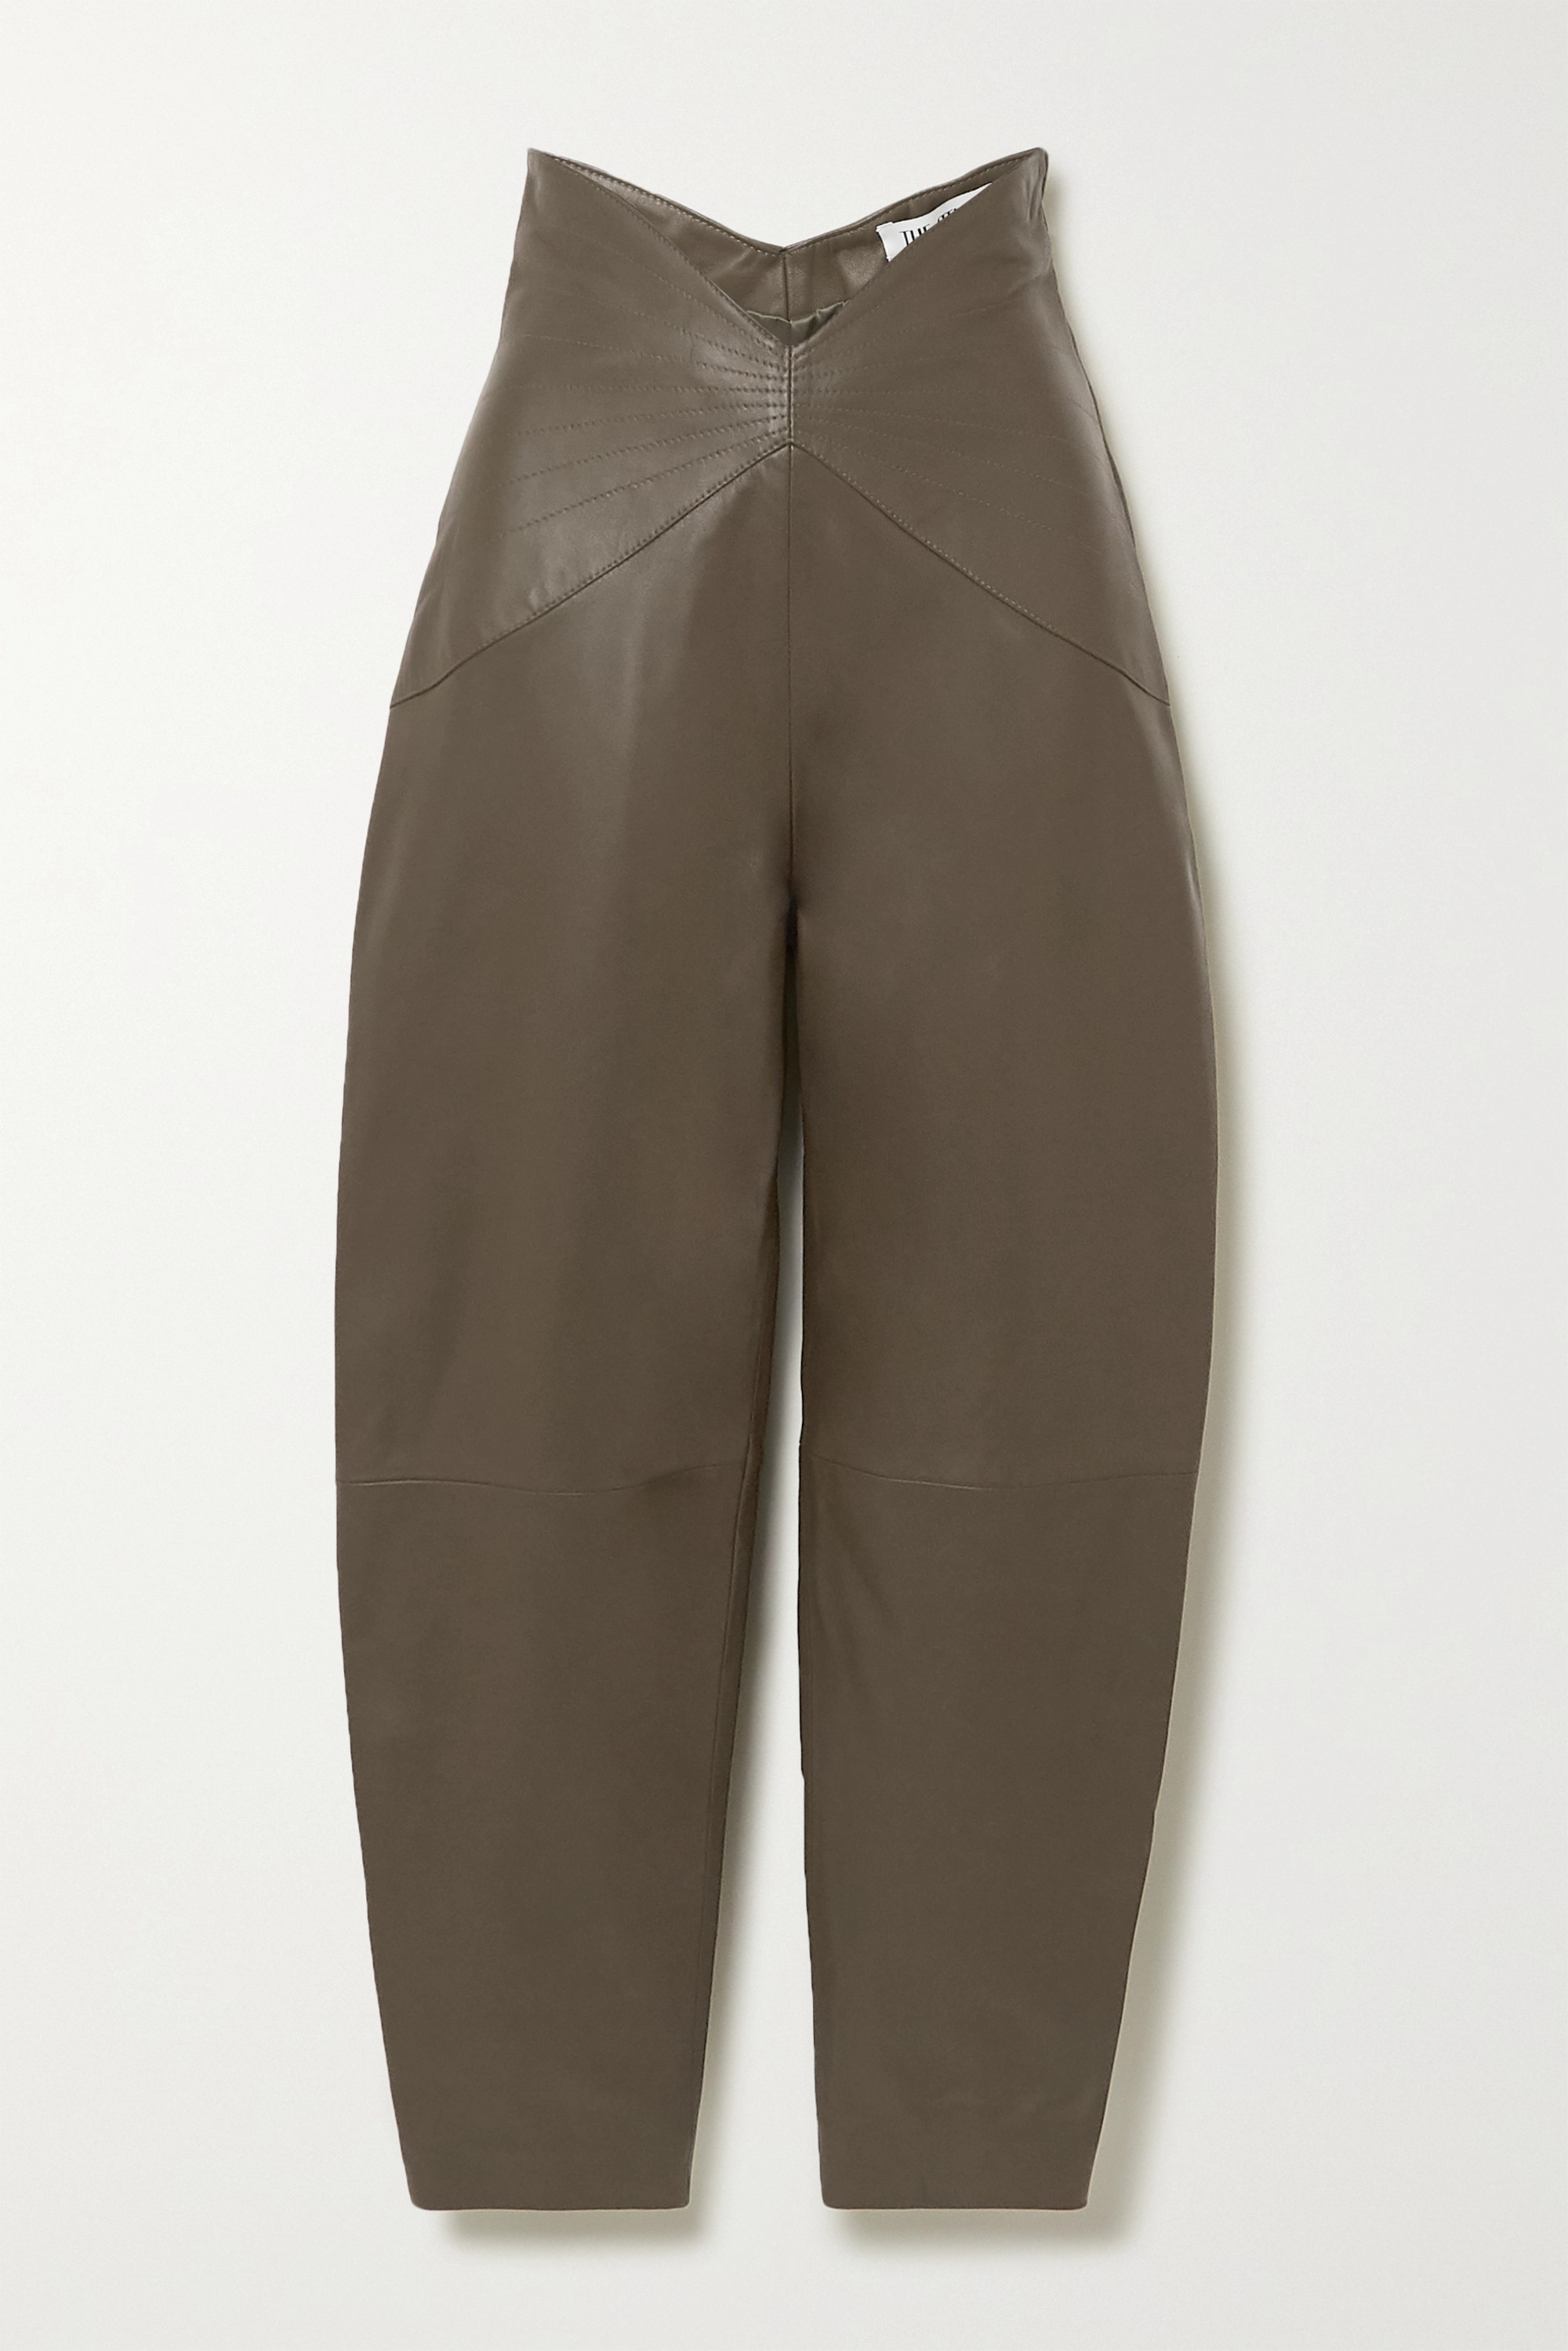 The Attico Leather tapered pants